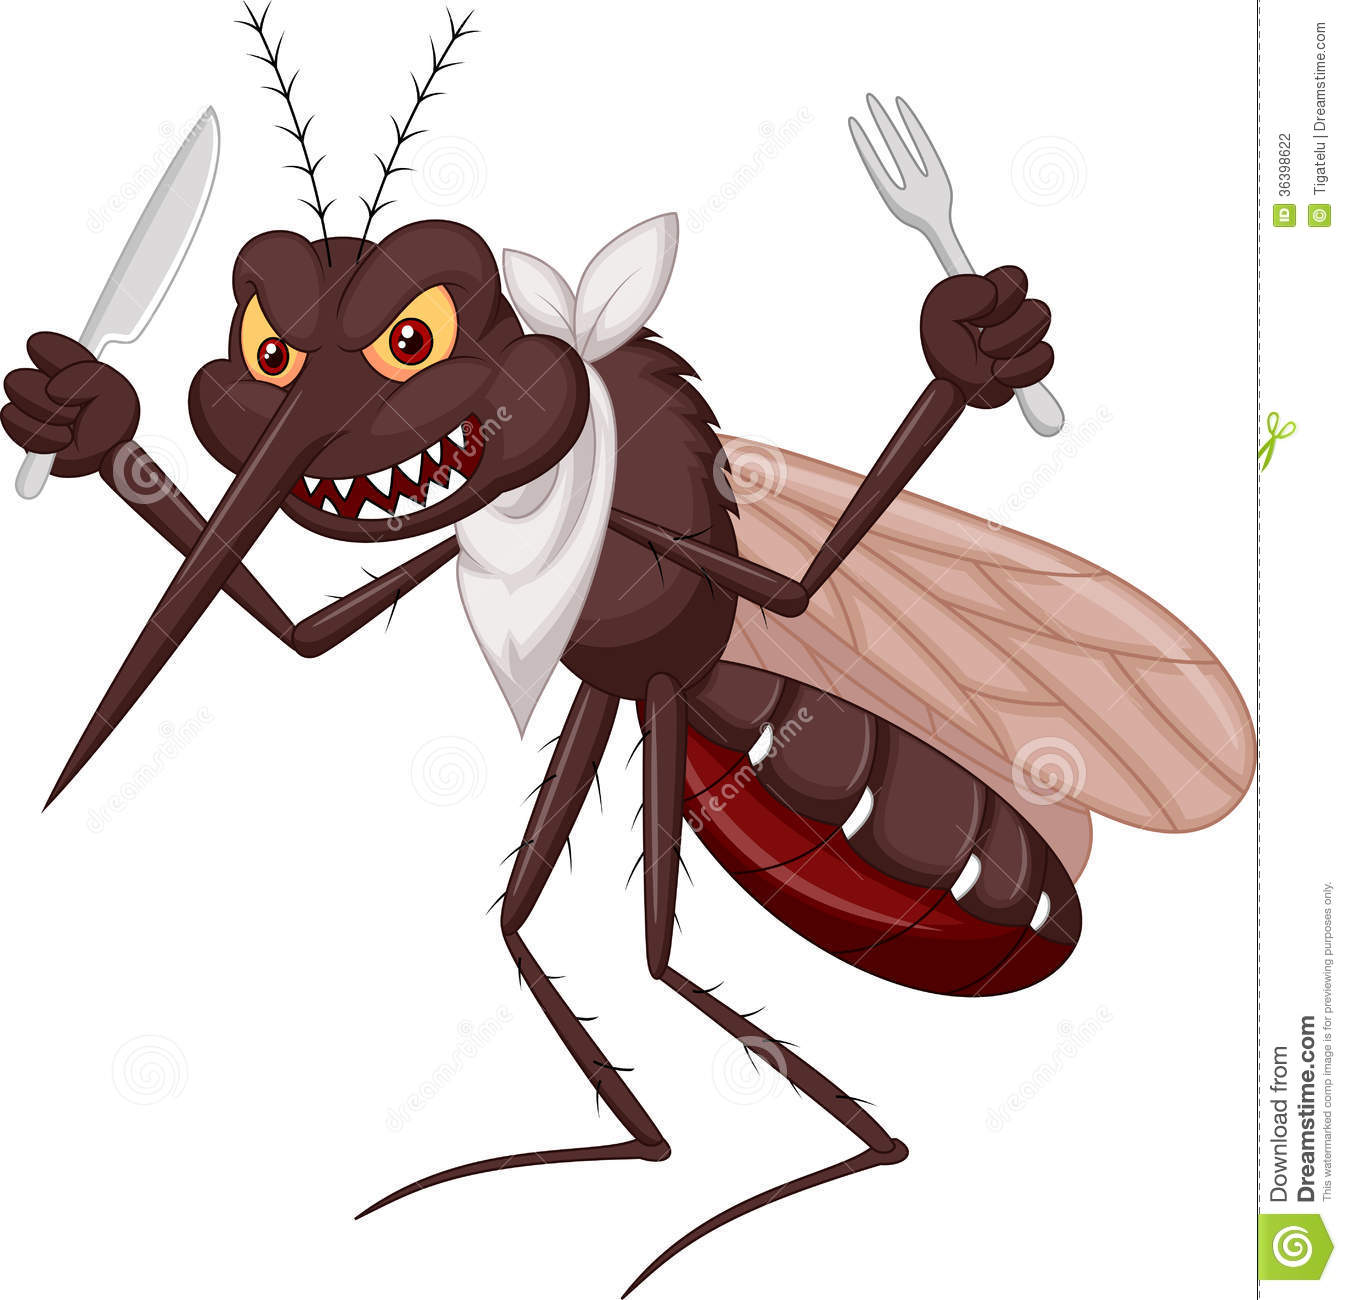 Mosquito Cartoon Ready For Eat Stock Photography - Image: 36398622